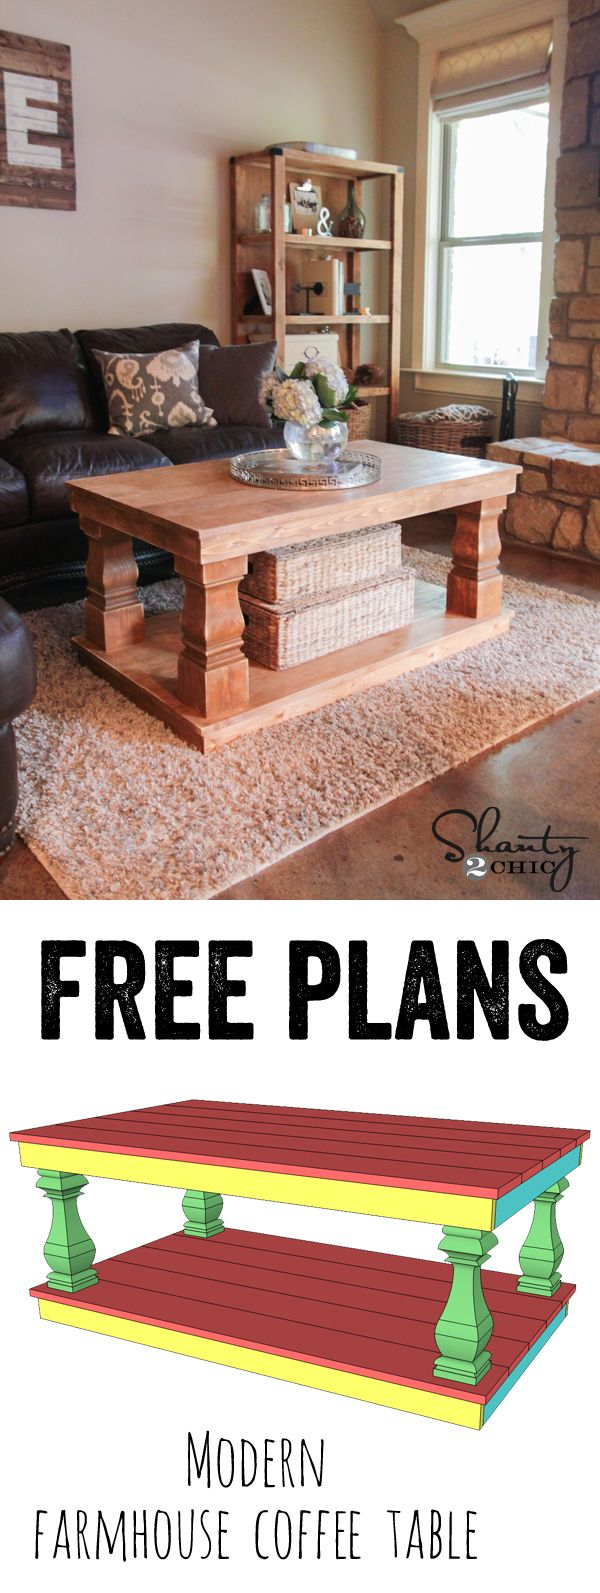 Pallet Coffee Table Plans and More for Free. Visit Now and get your DIY On!